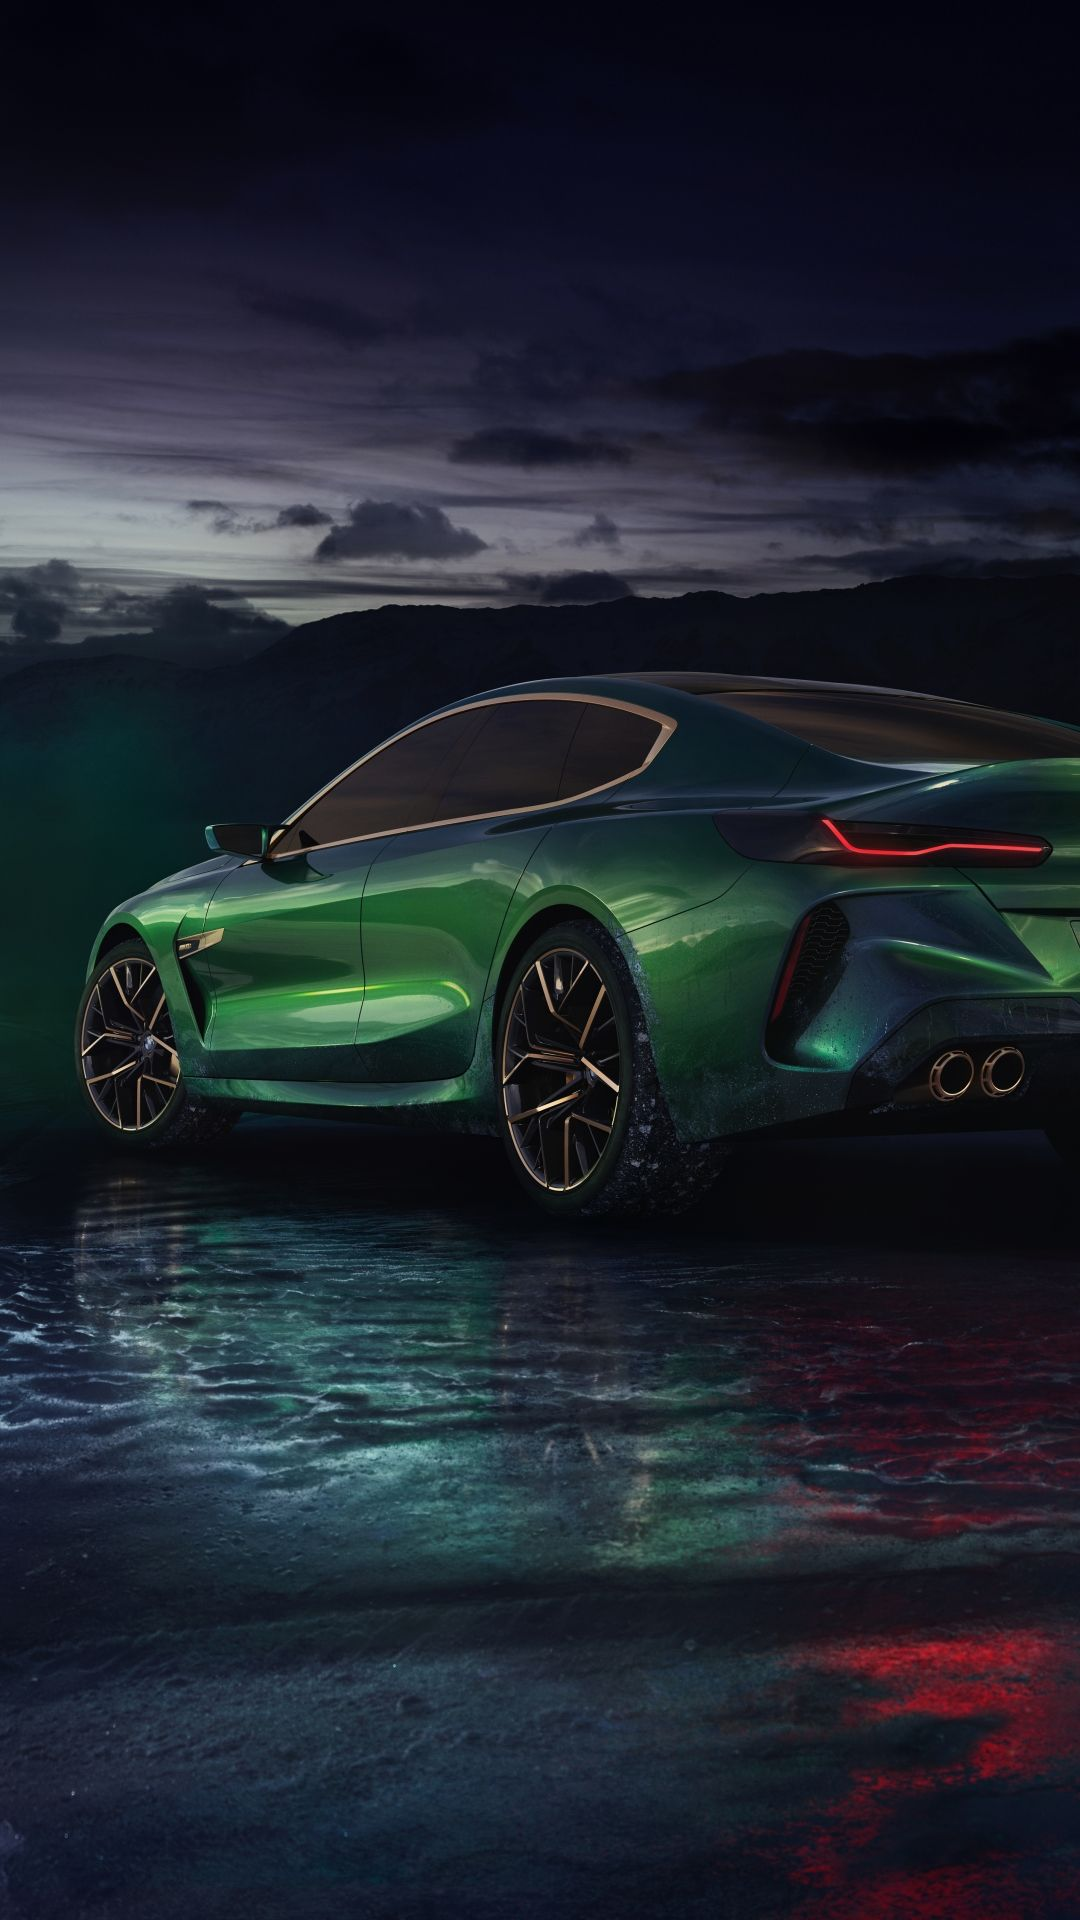 Bmw M8 Gran Coupe 1080 1920 Mobile Wallpaper Bmw Super Luxury Cars Bmw Wallpapers